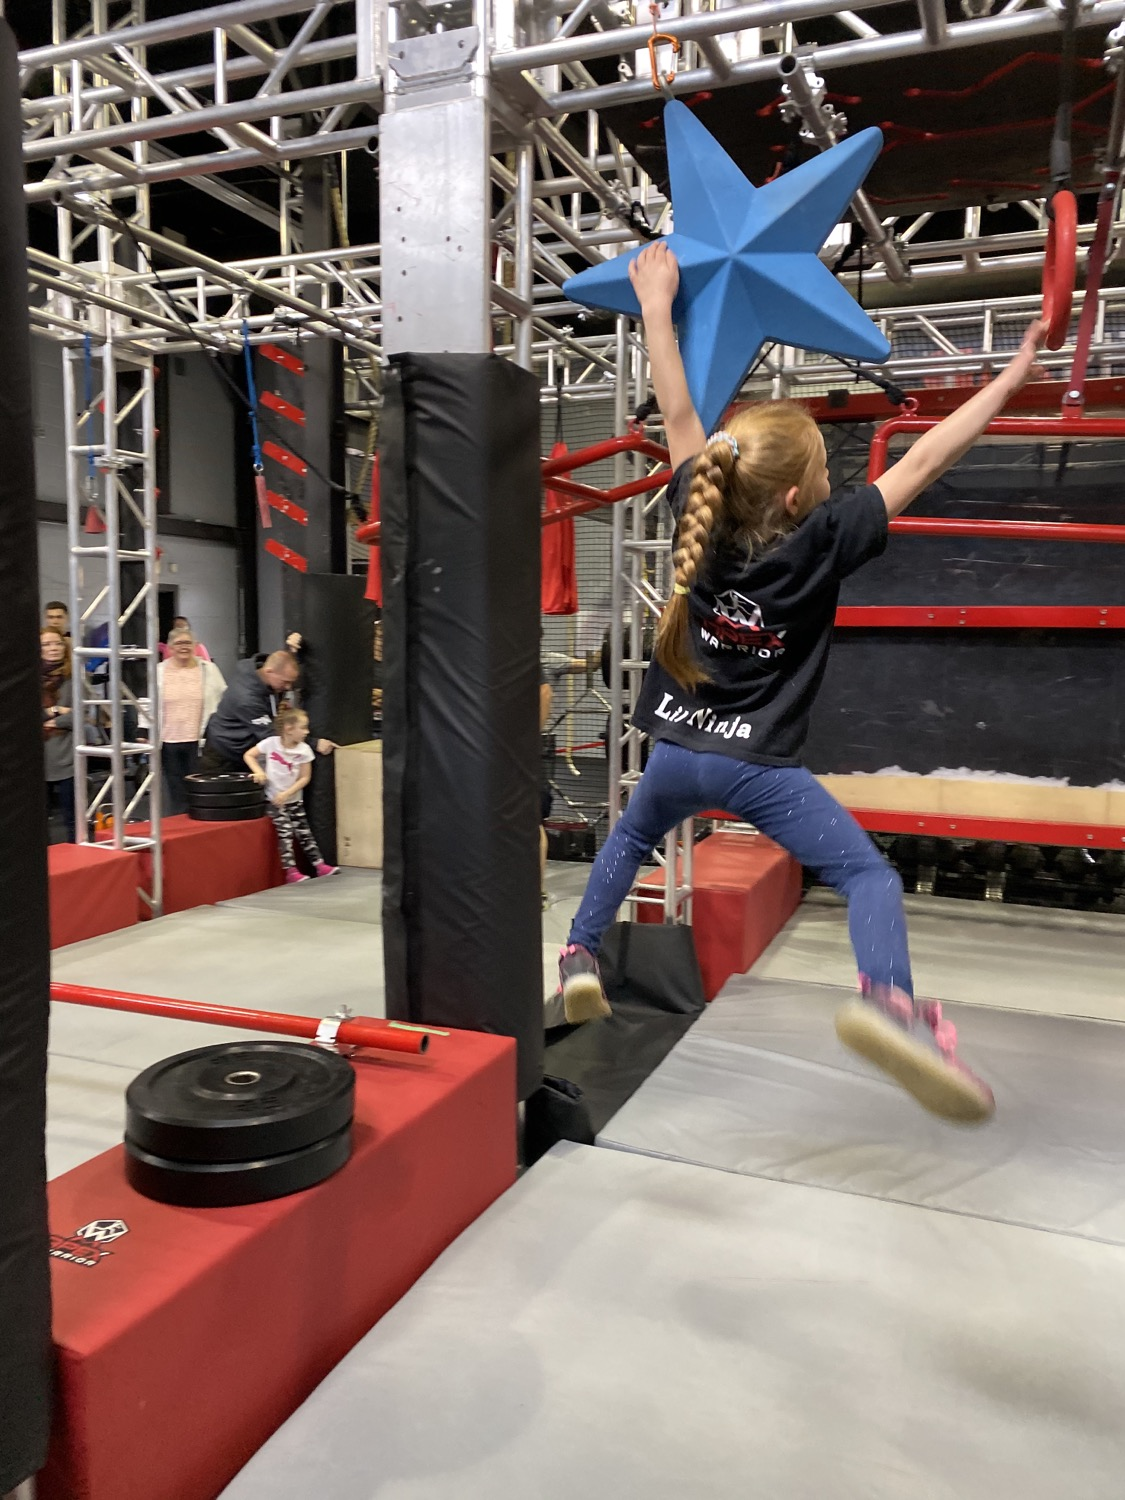 Kid swinging from star to ring